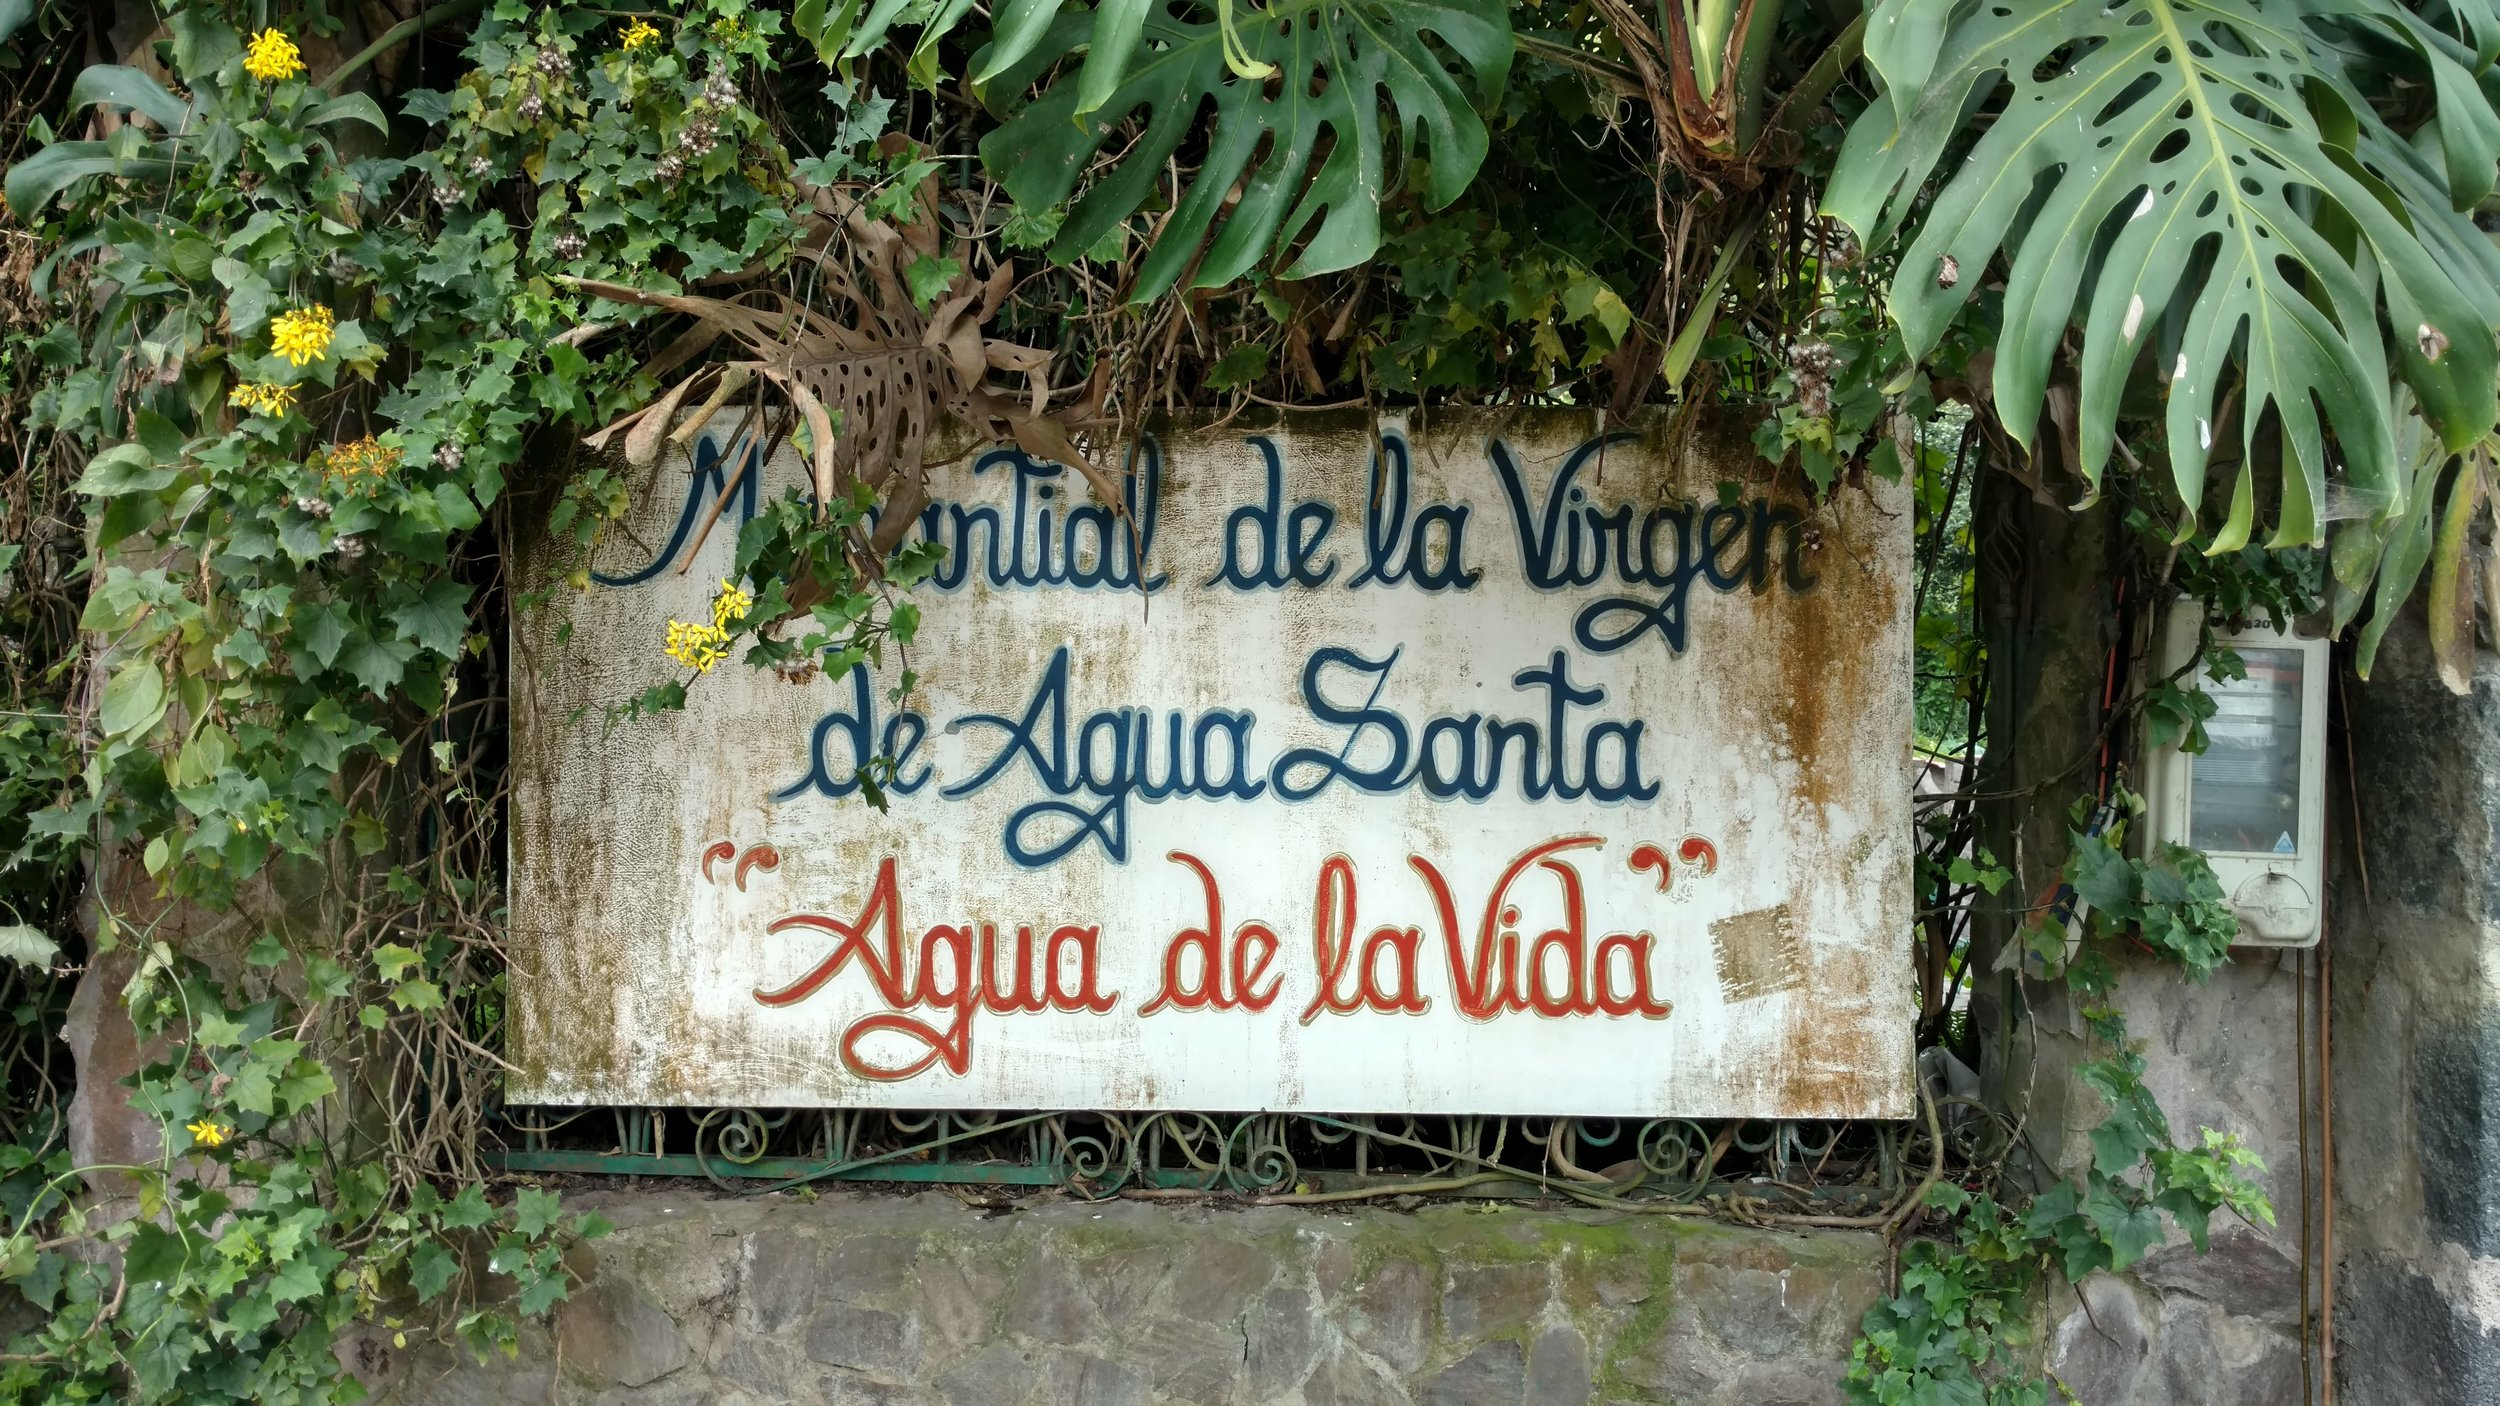 """Spring of the Virgin of Holy Water, """"Water of Life"""""""